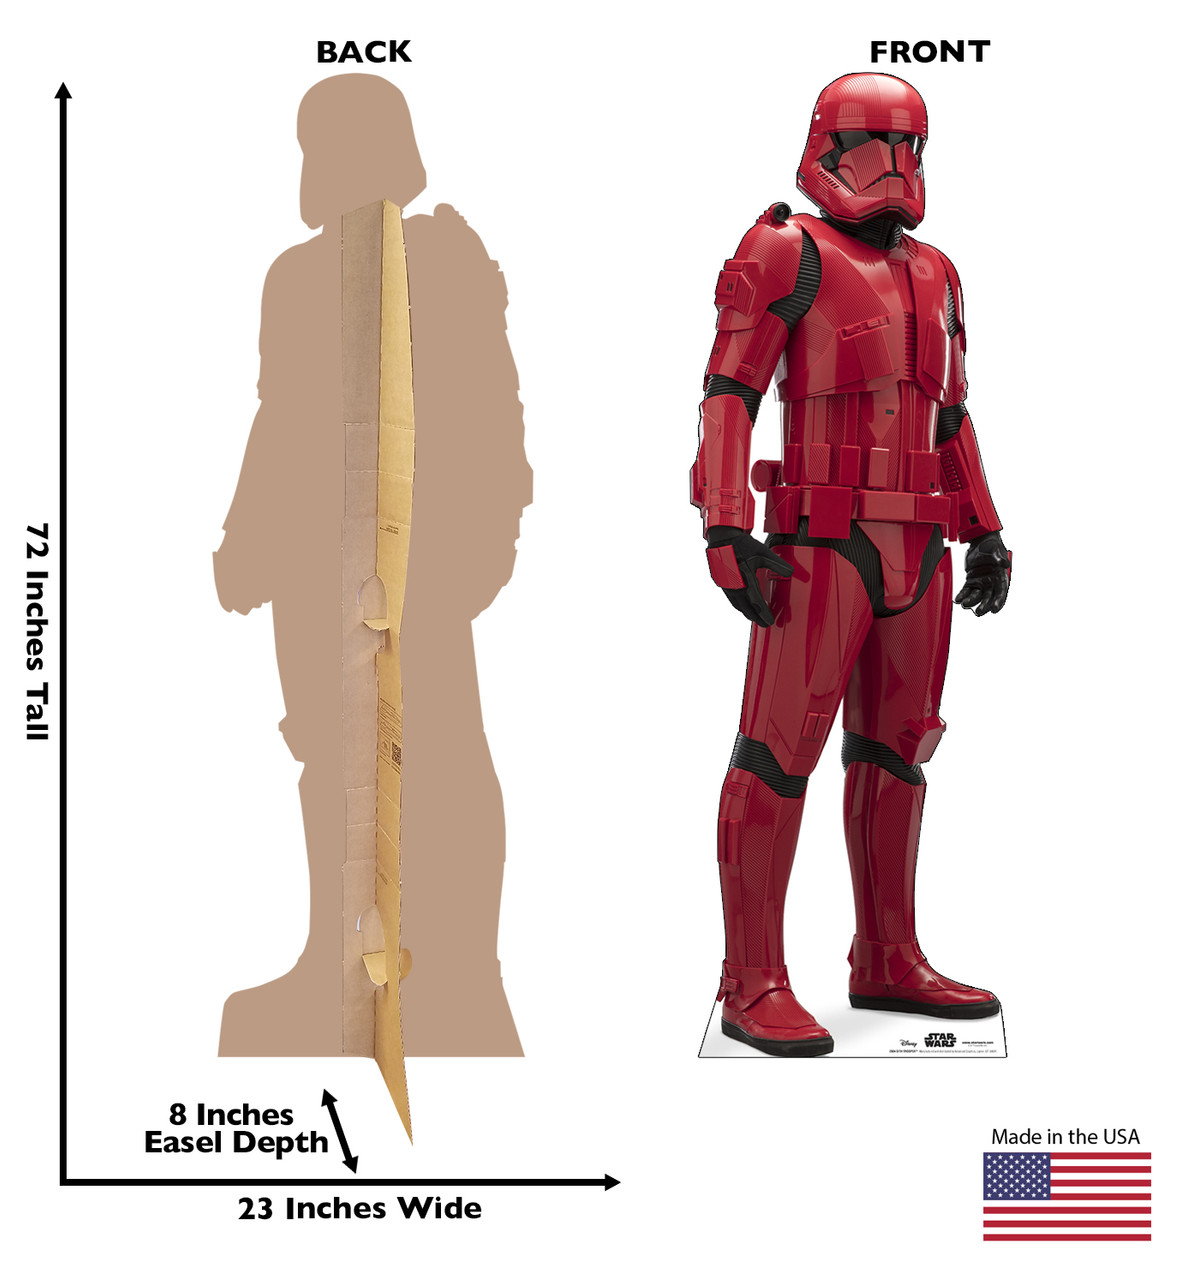 Life-size cardboard standee of Sith Trooper™ (Star Wars IX) with back and front dimensions.